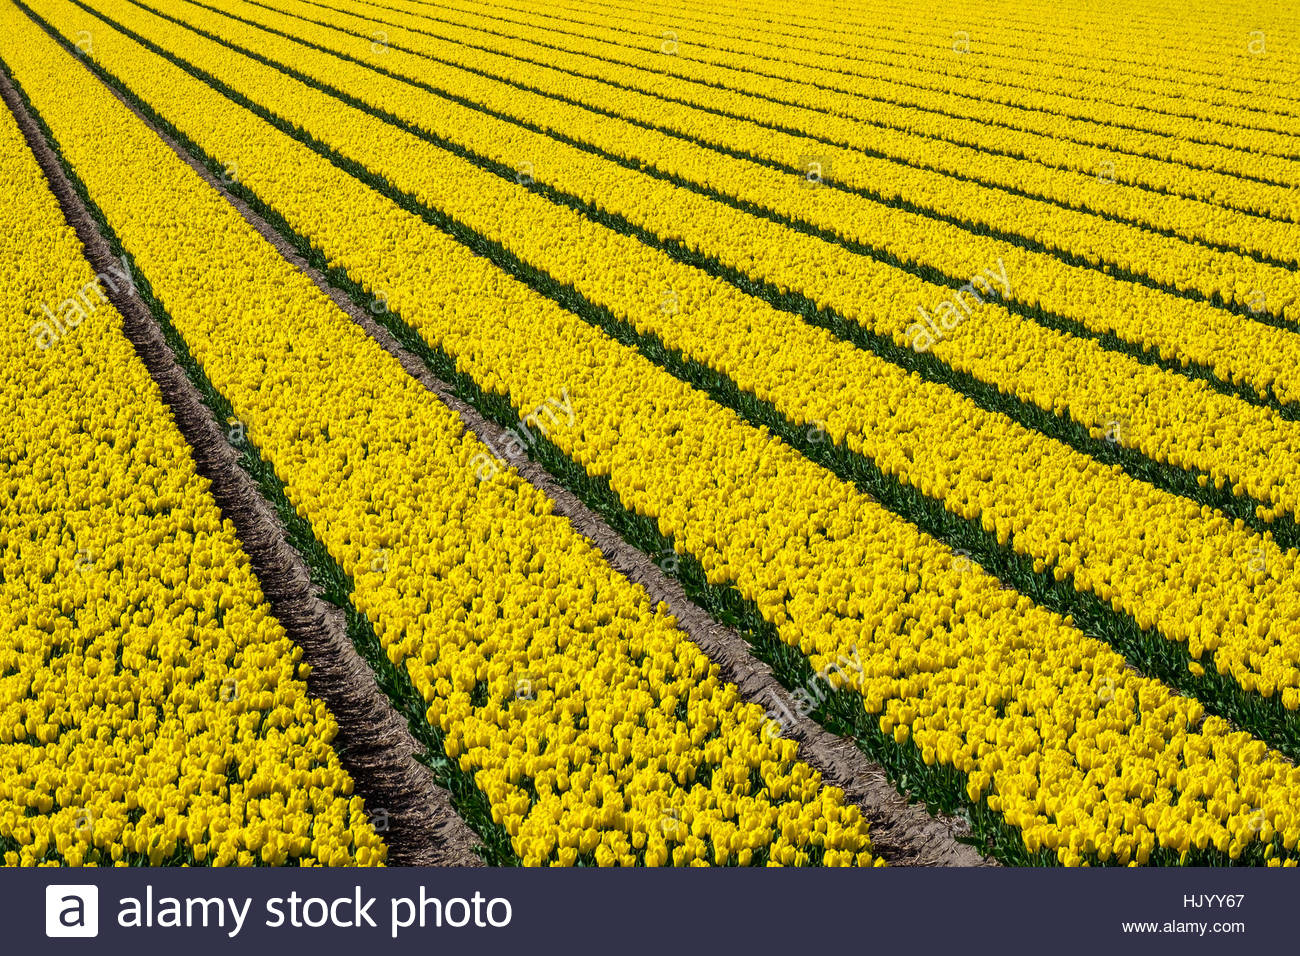 Netherlands, North Holland, Den Helder. Rows of colorful flowering tulips in a bulb field in spring. - Stock Image